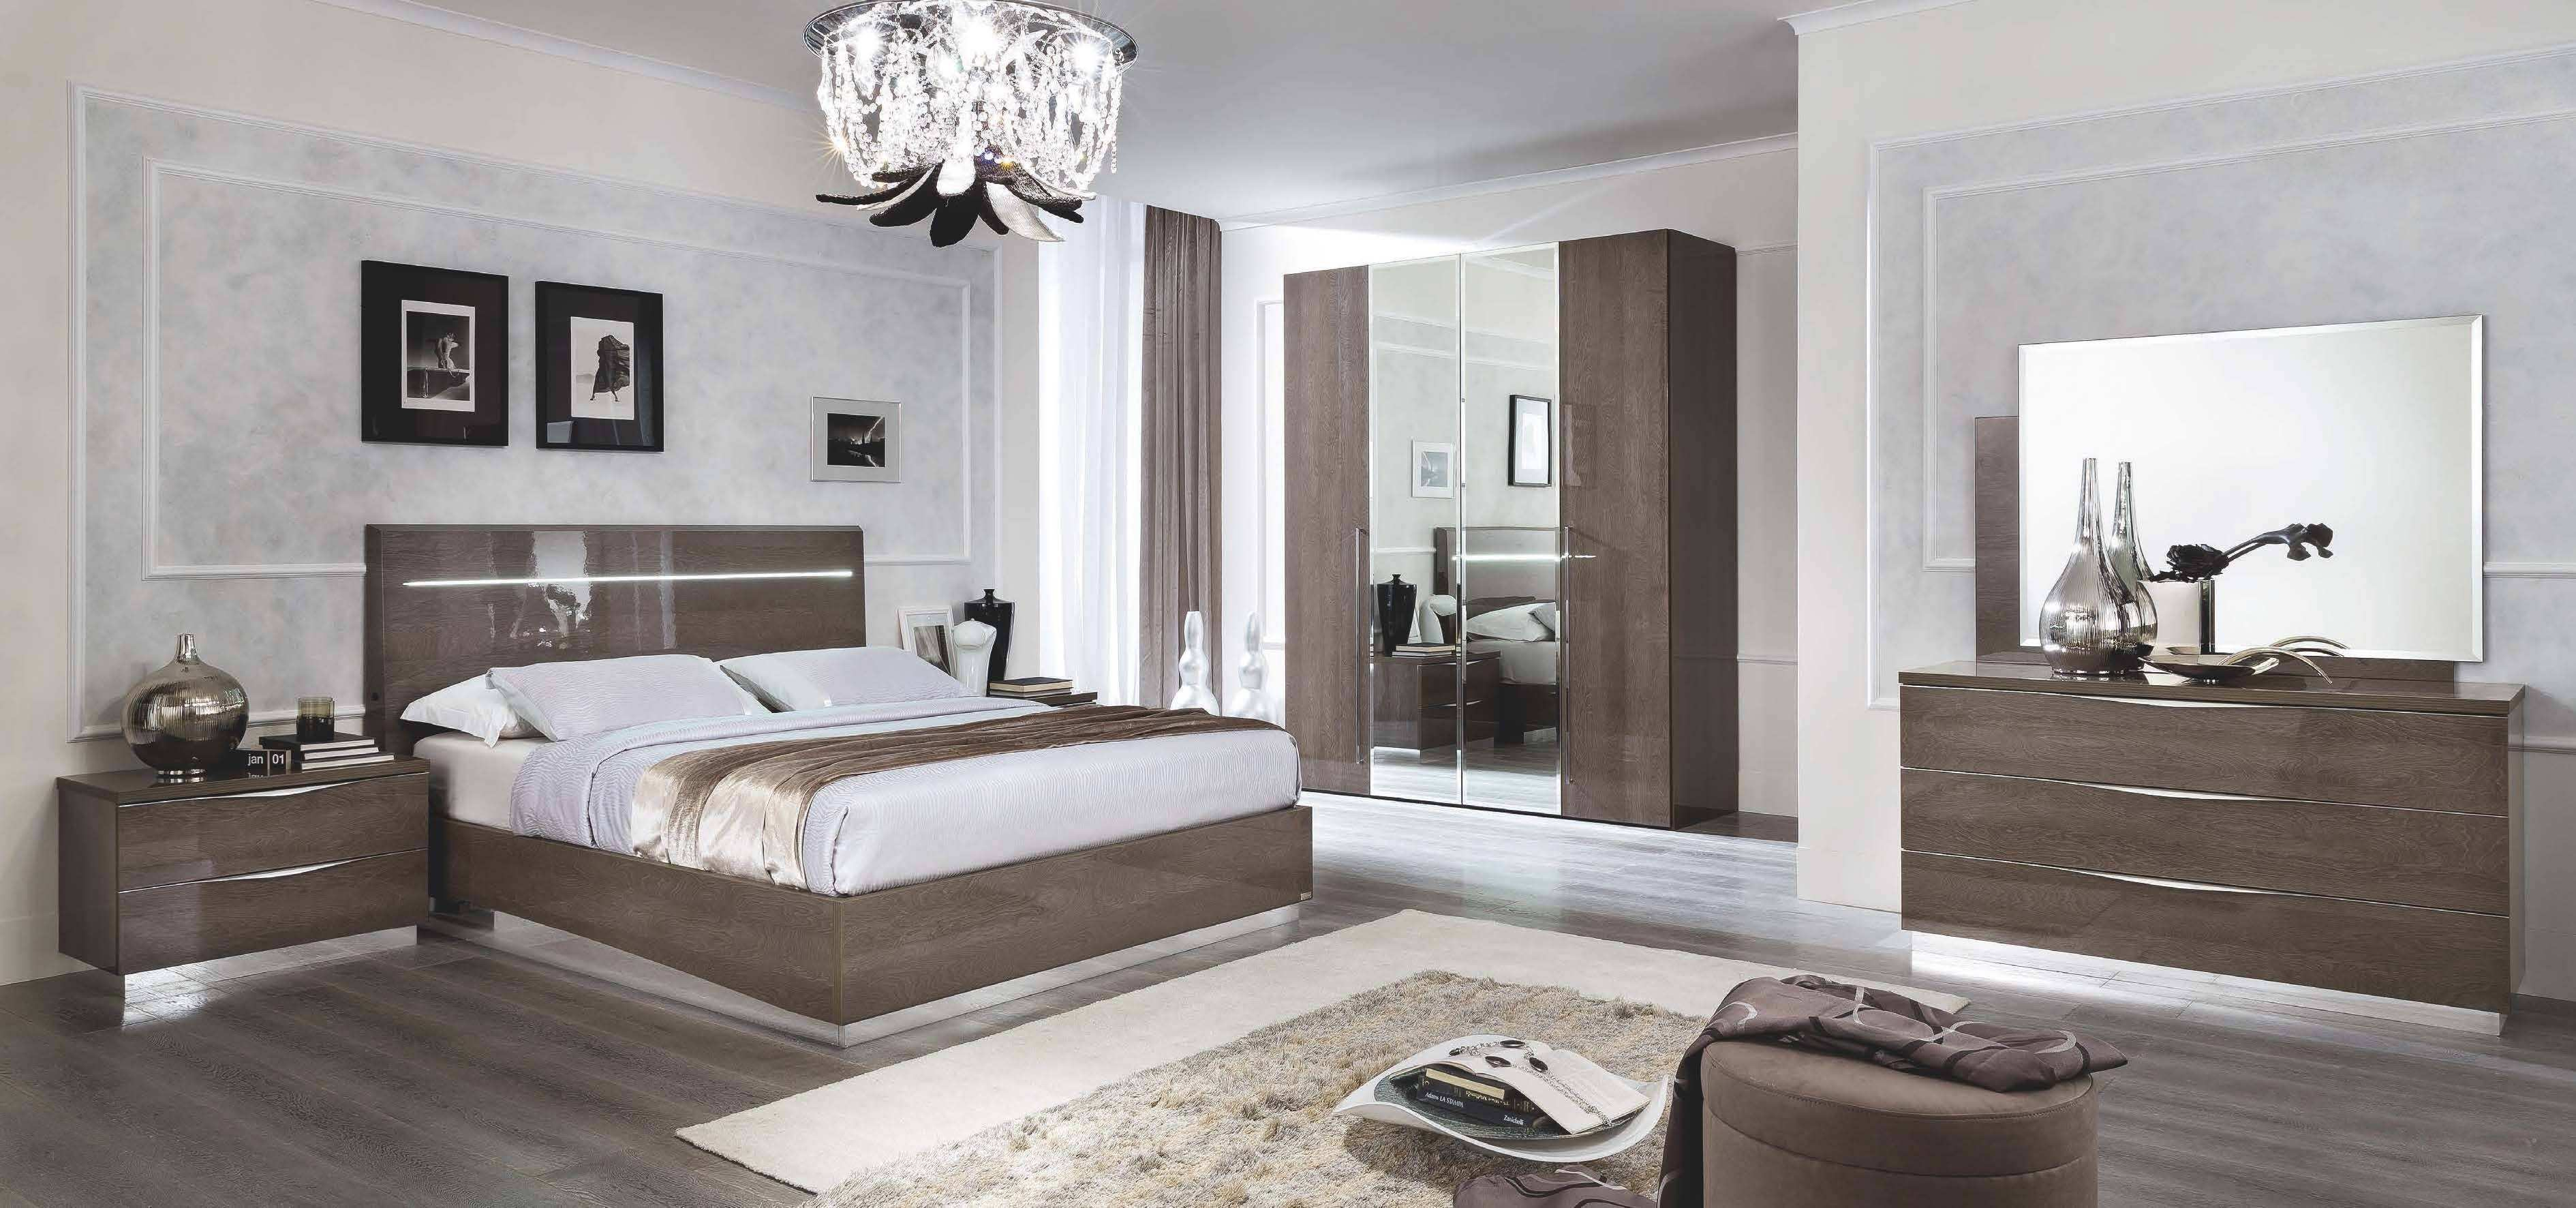 Bed Frame Plan Bedroom Bedroom Sets Luxury Anthony 26 3bs Upholstery